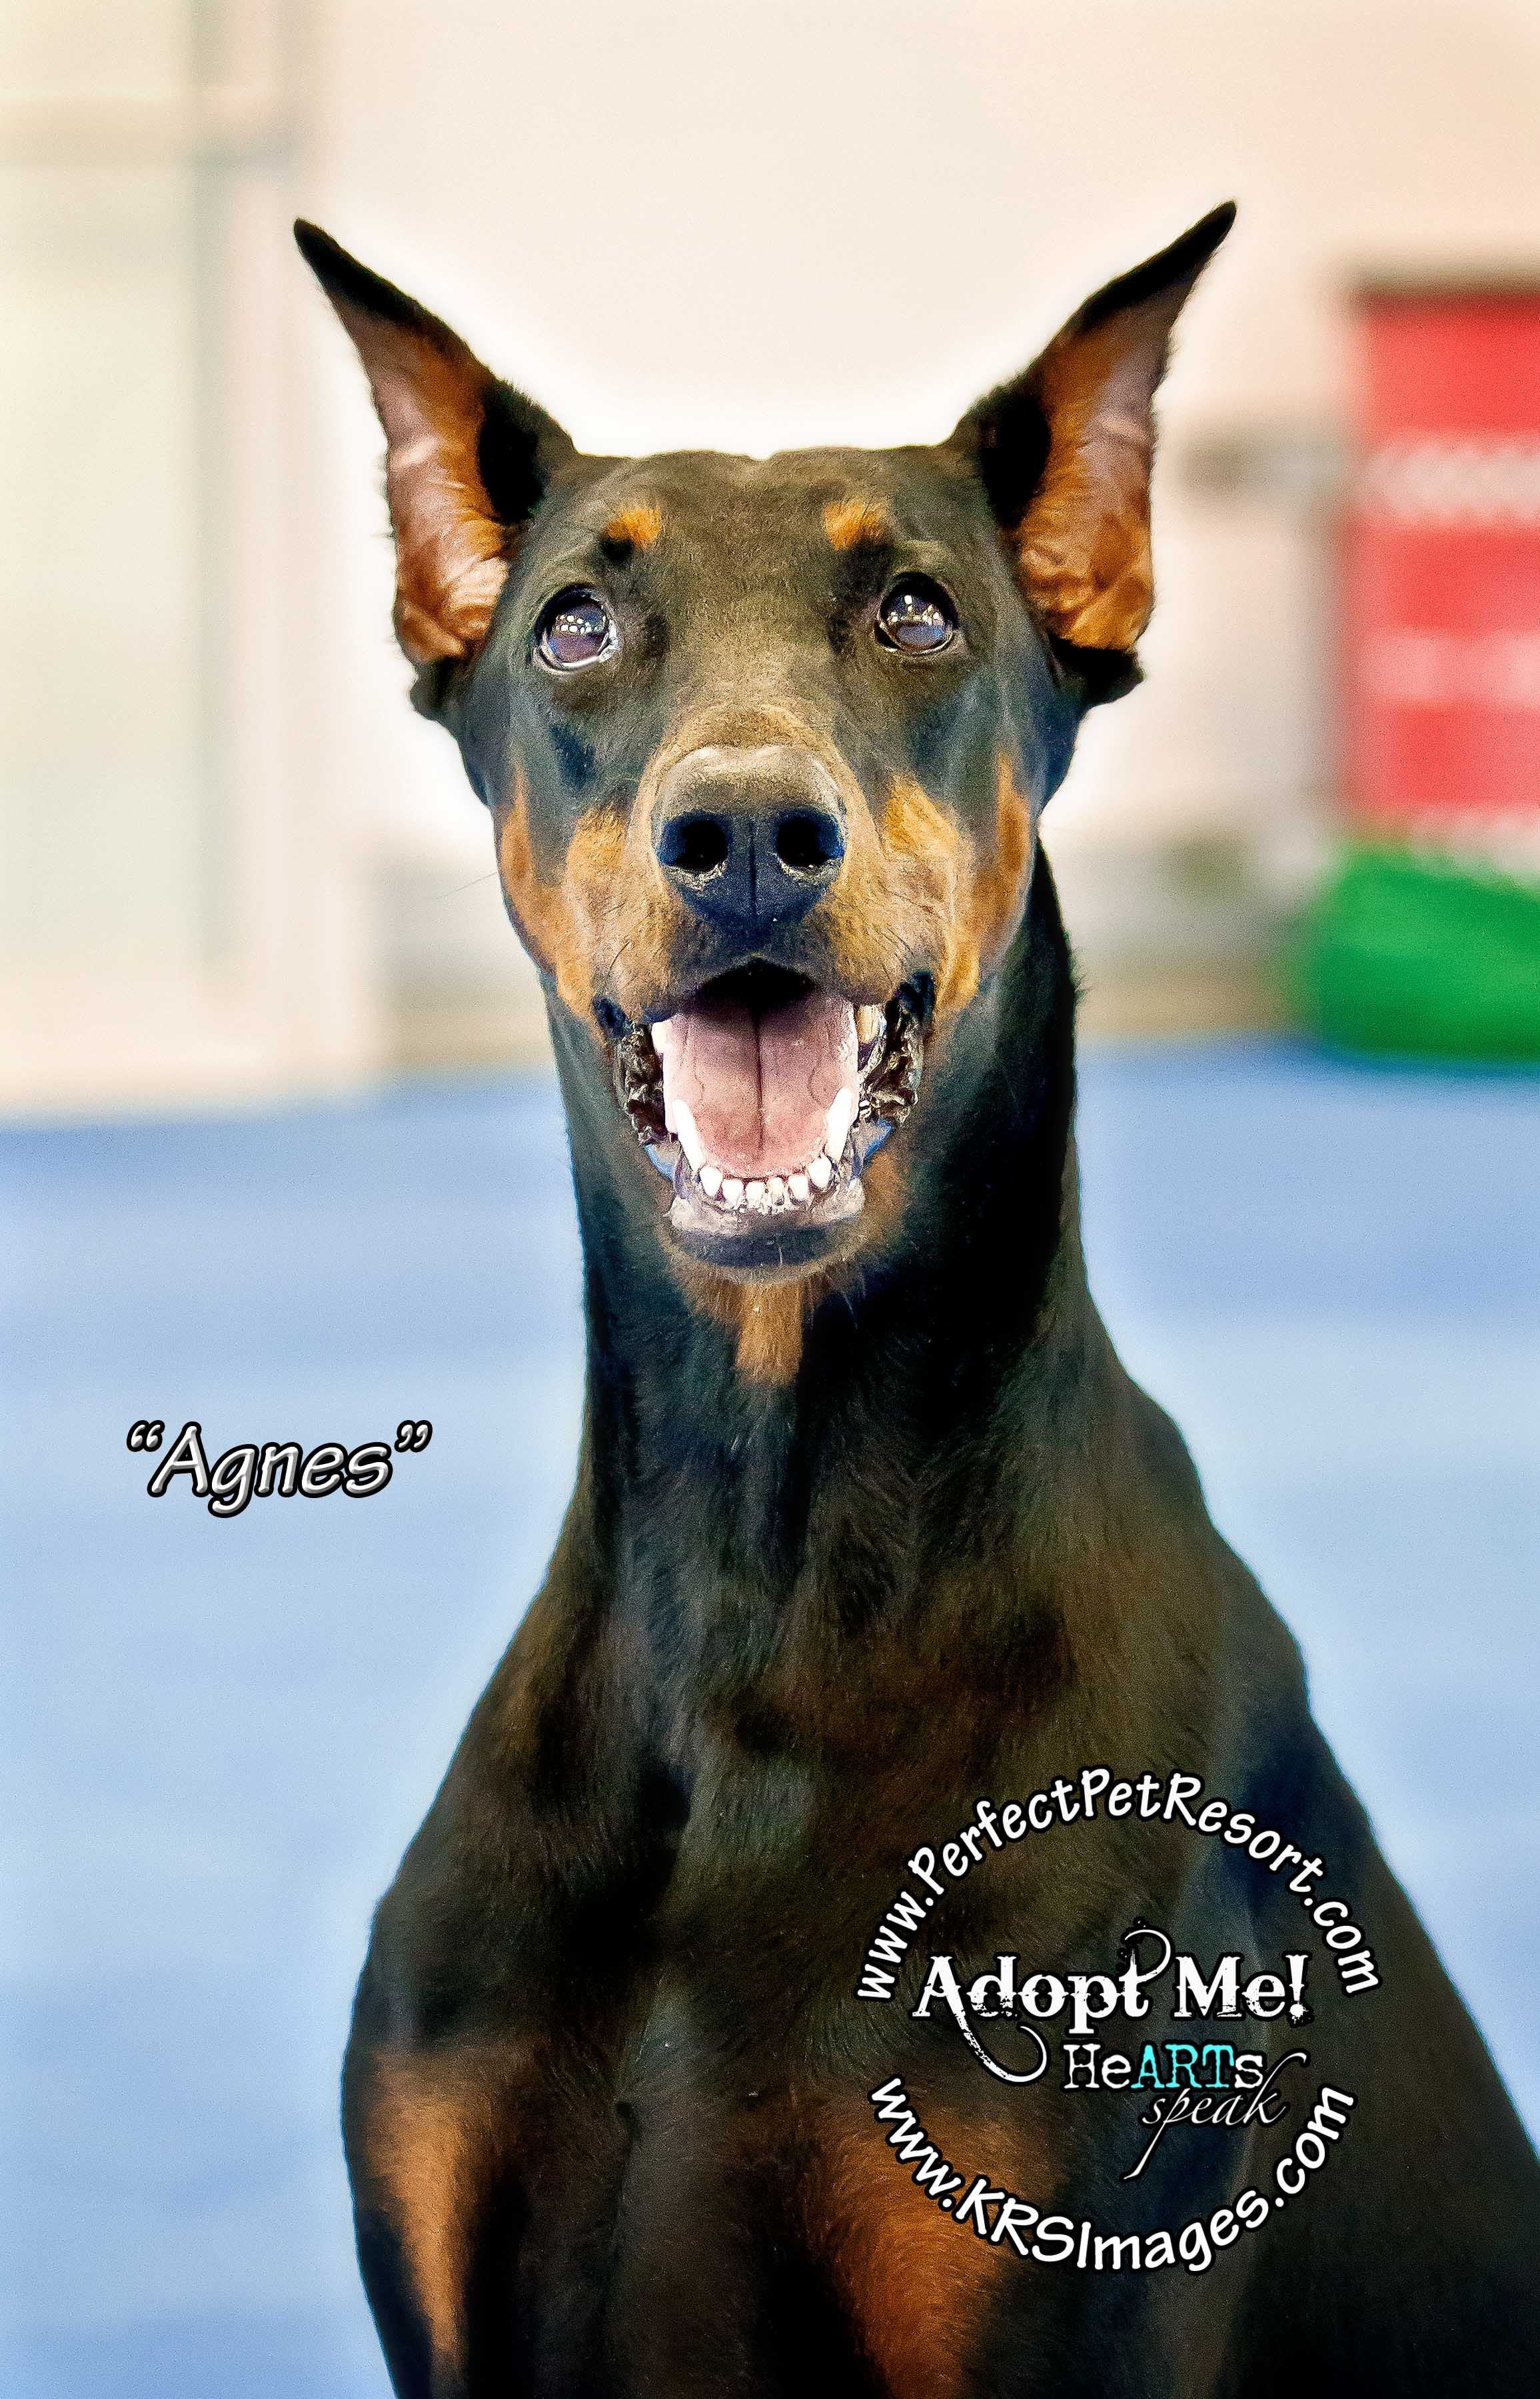 Agnes is a very elegant 4 year old doberman who is looking